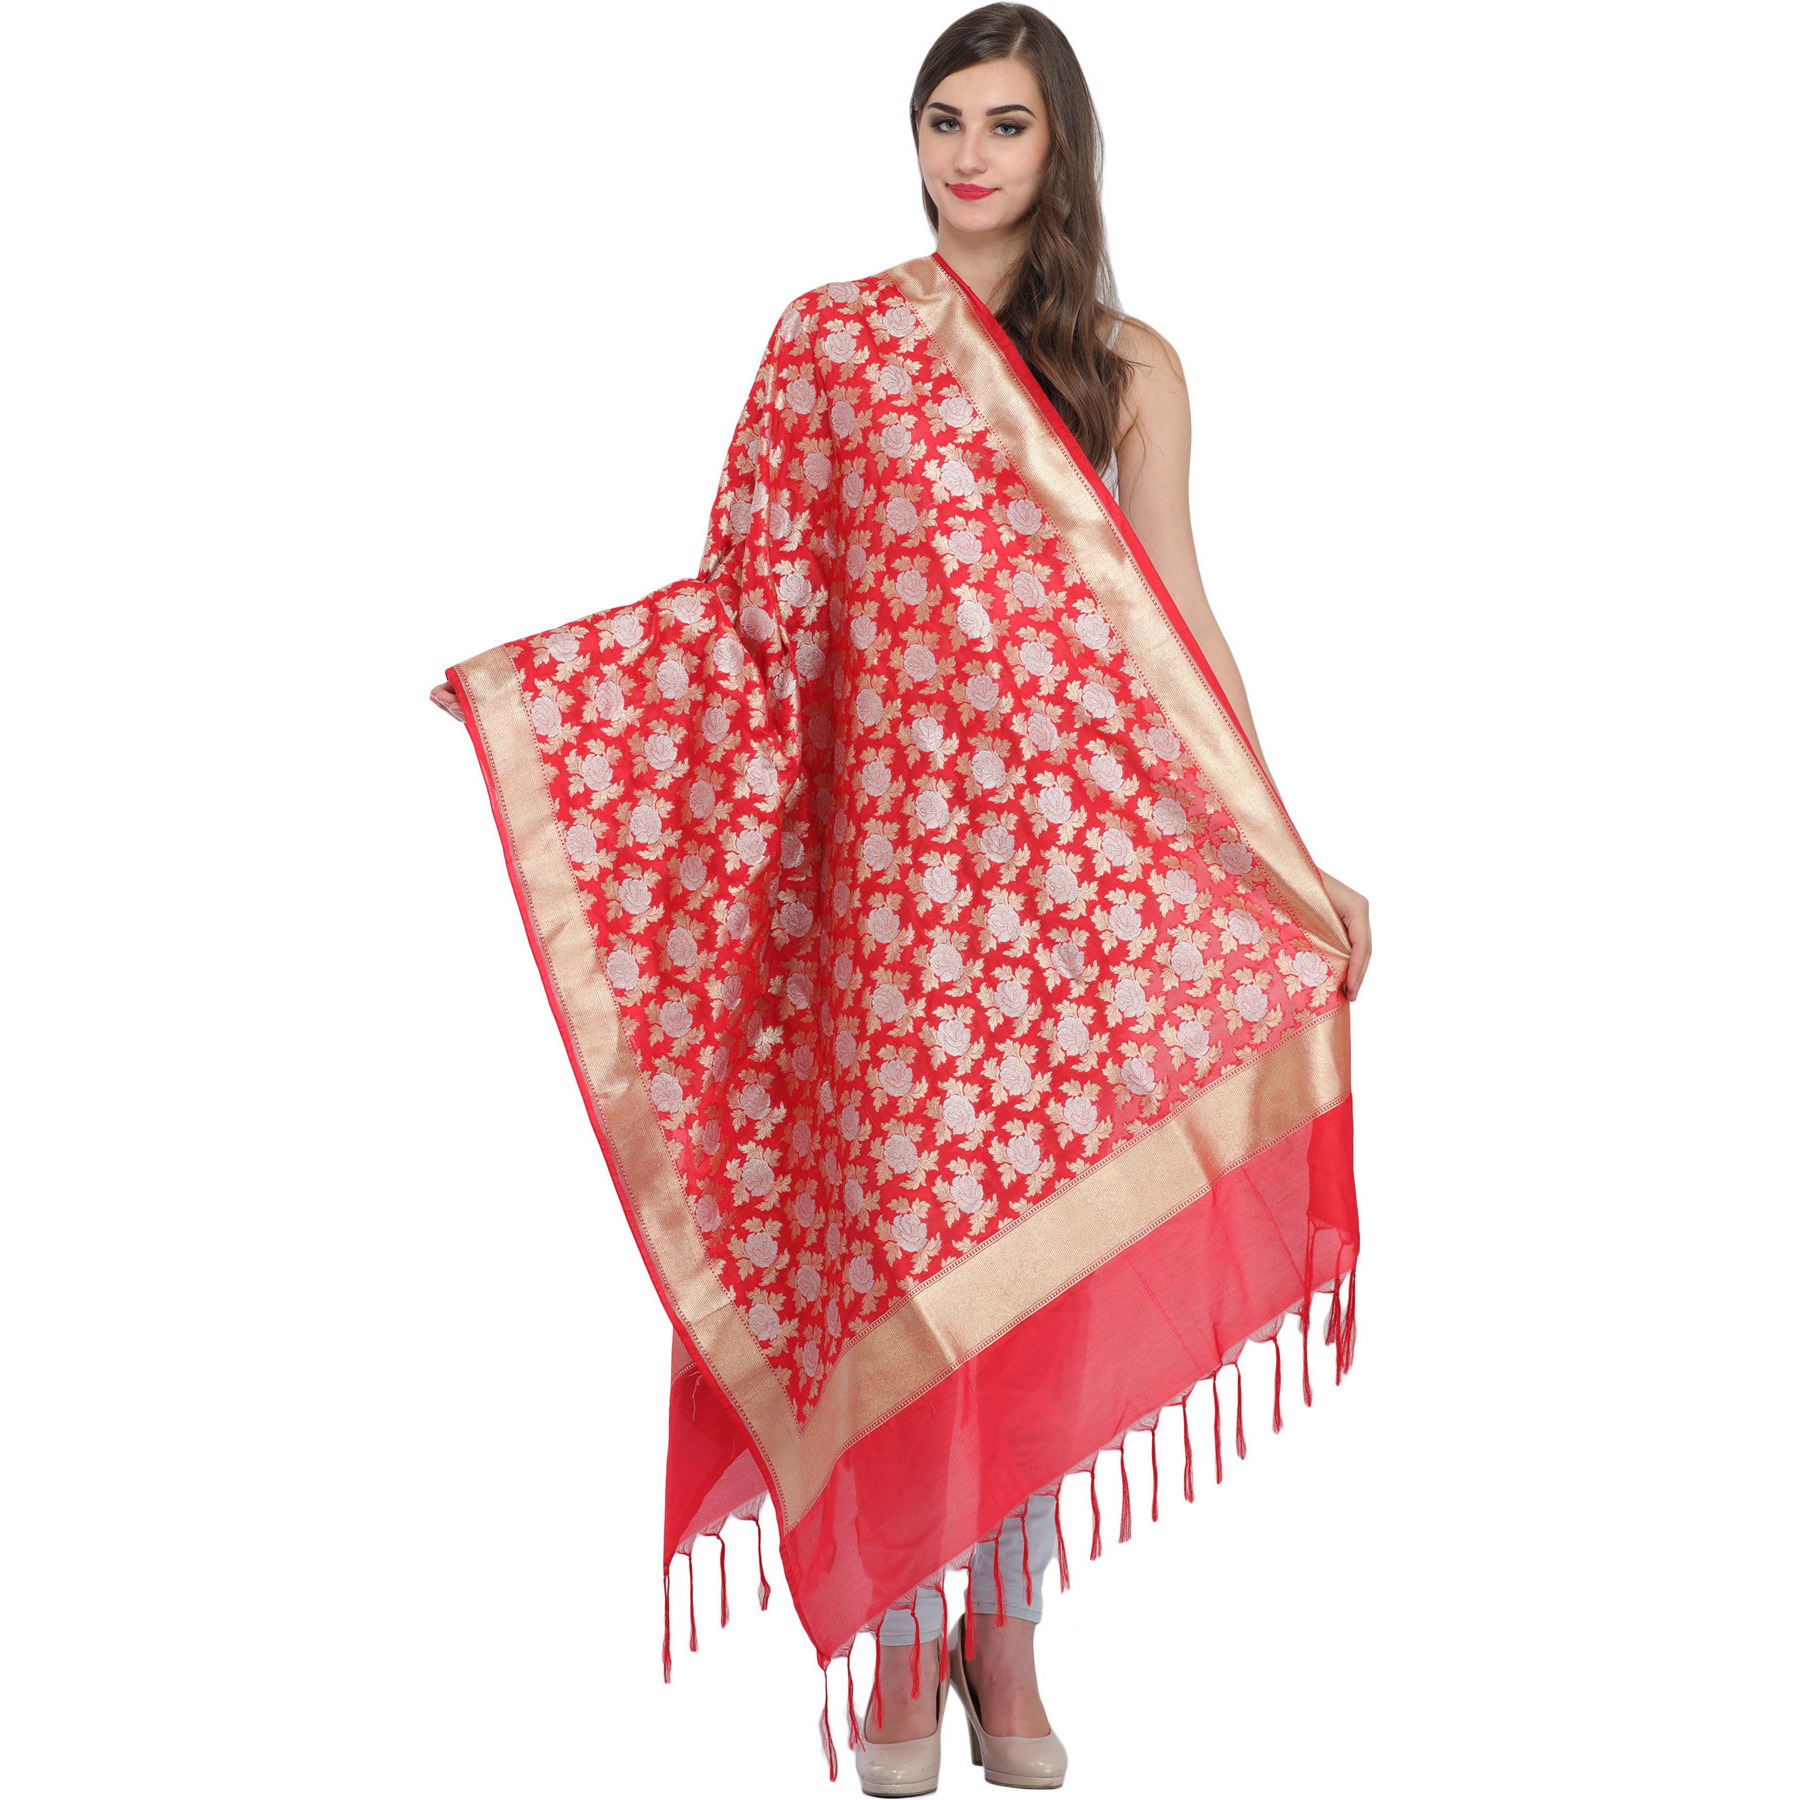 Banarasi Brocaded Dupatta with Woven-Roses and Golden Border